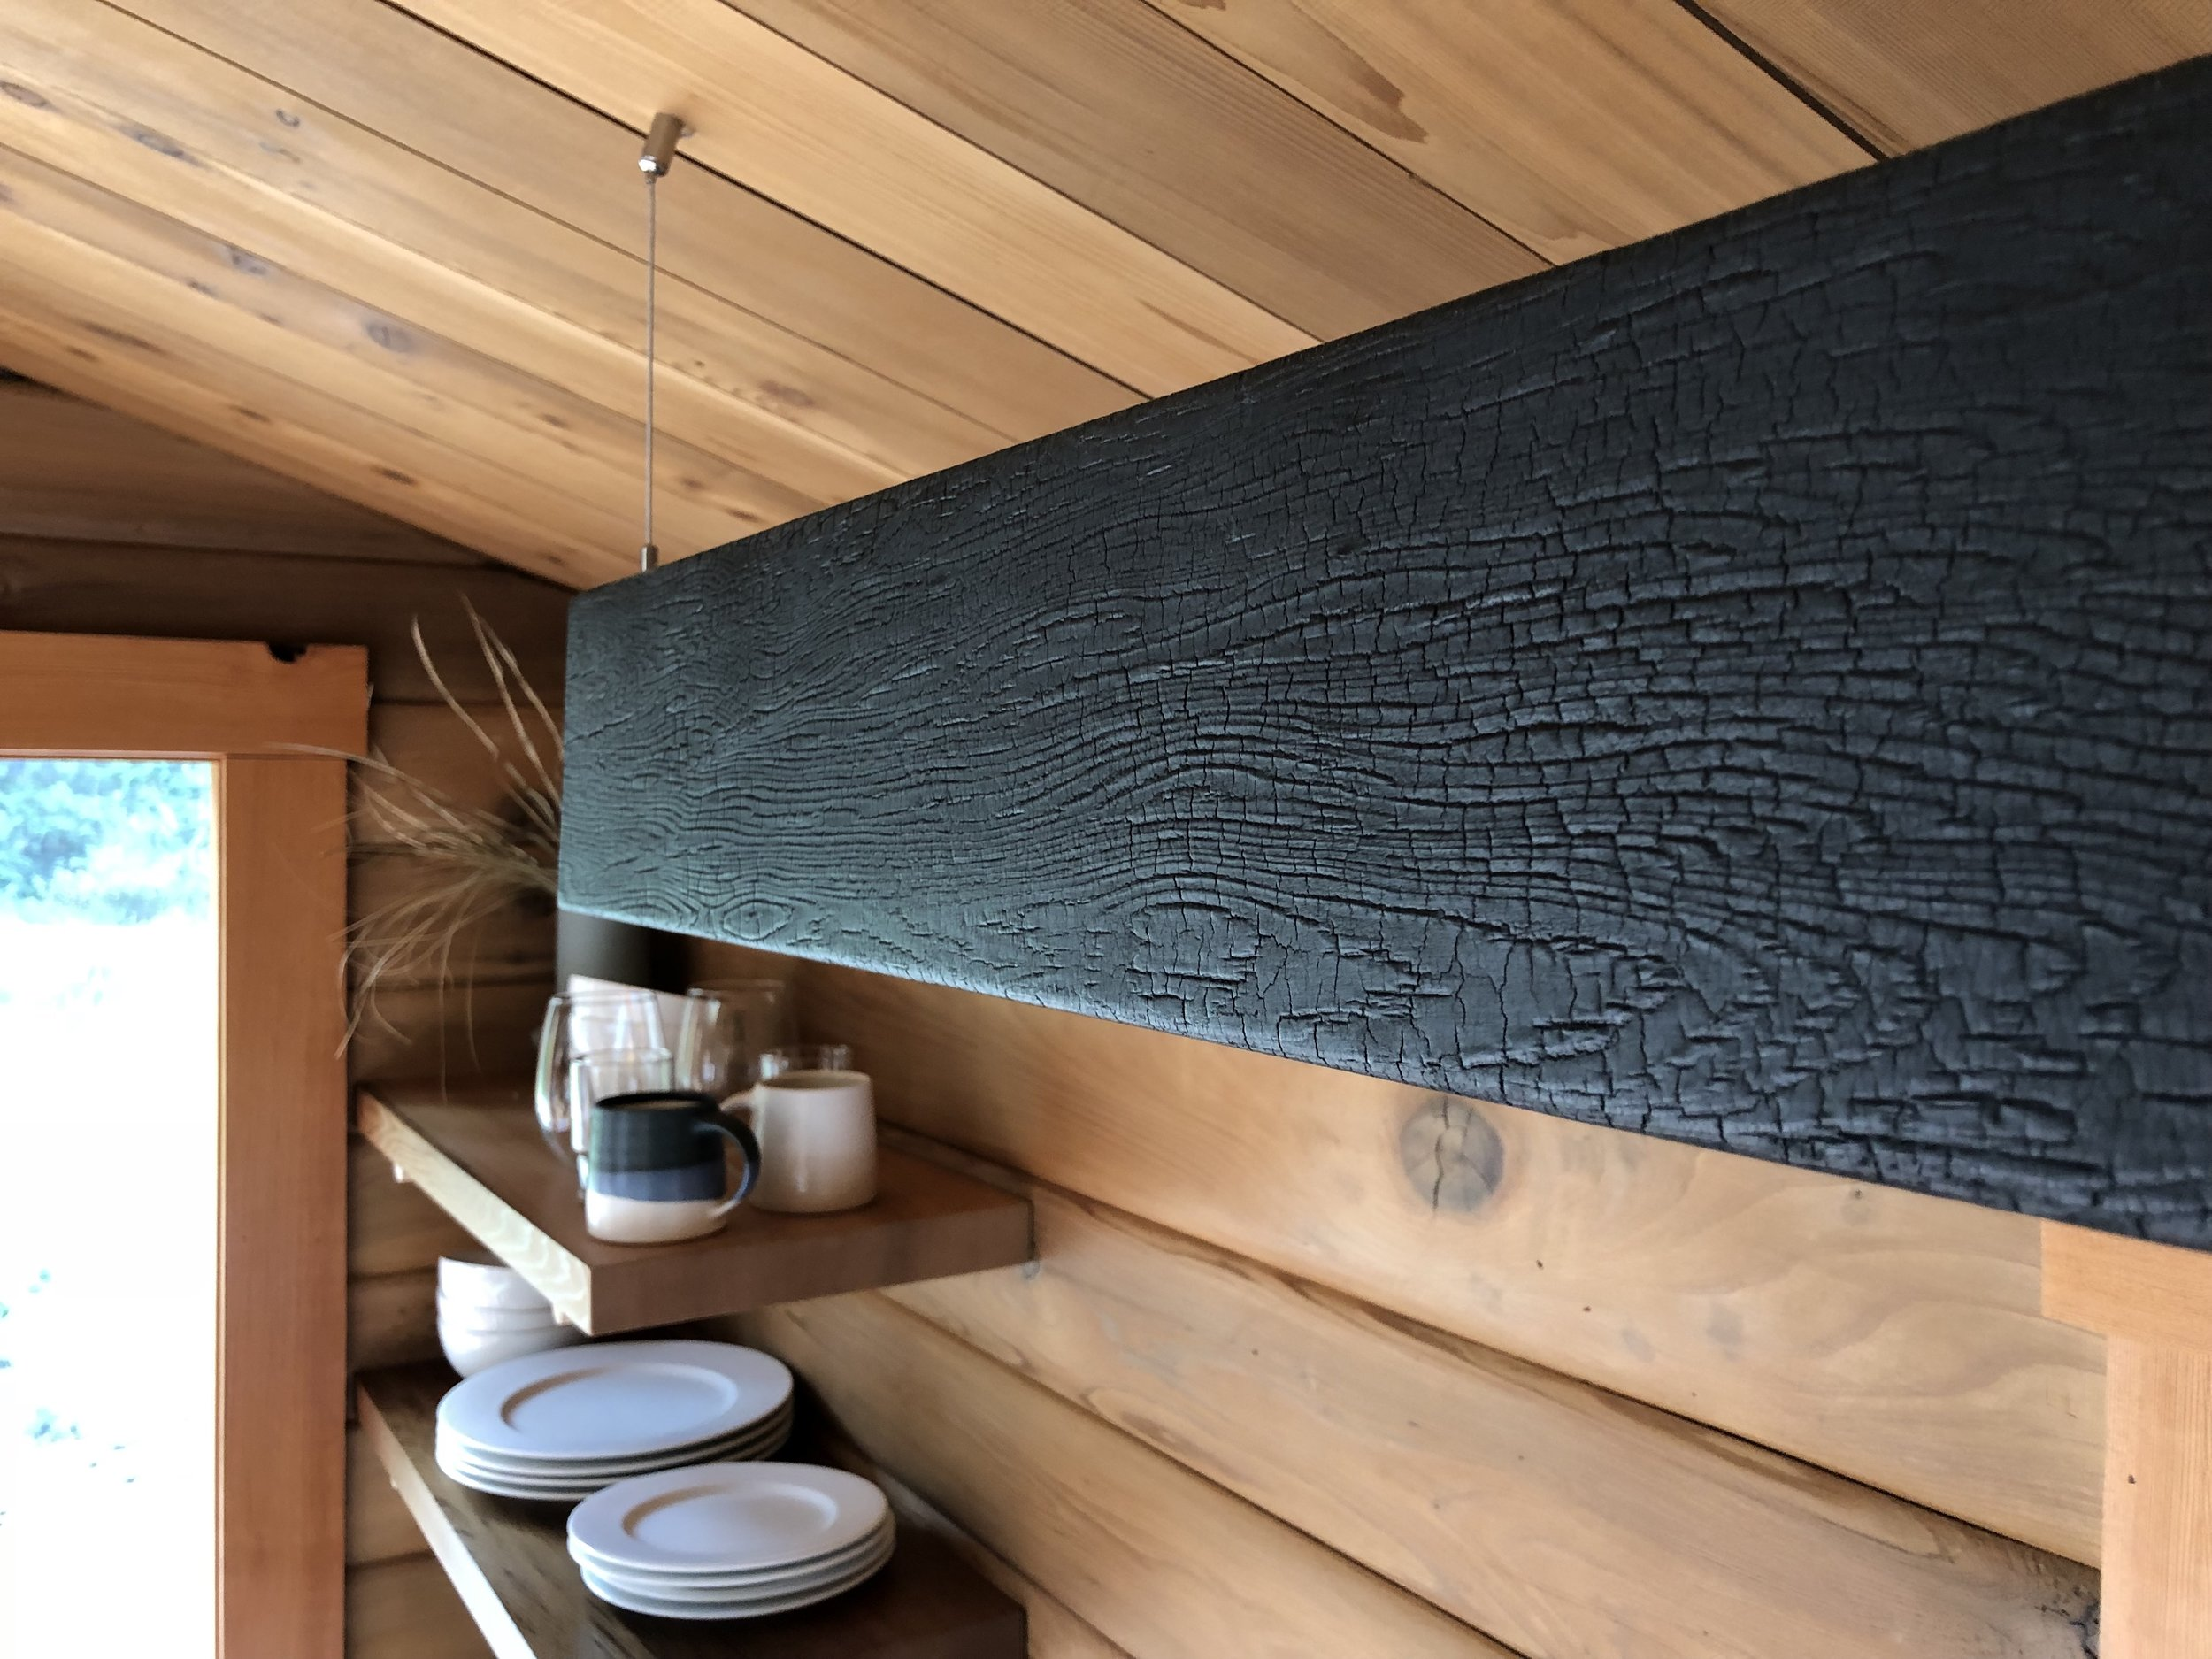 Shou Sugi Ban - DETAILS: BRINGING THE OUTDOORS IN, I CREATED LED LIGHTING WITH THE SAME CHARRED CEDAR THAT CLADS THE EXTERIOR WALLS.